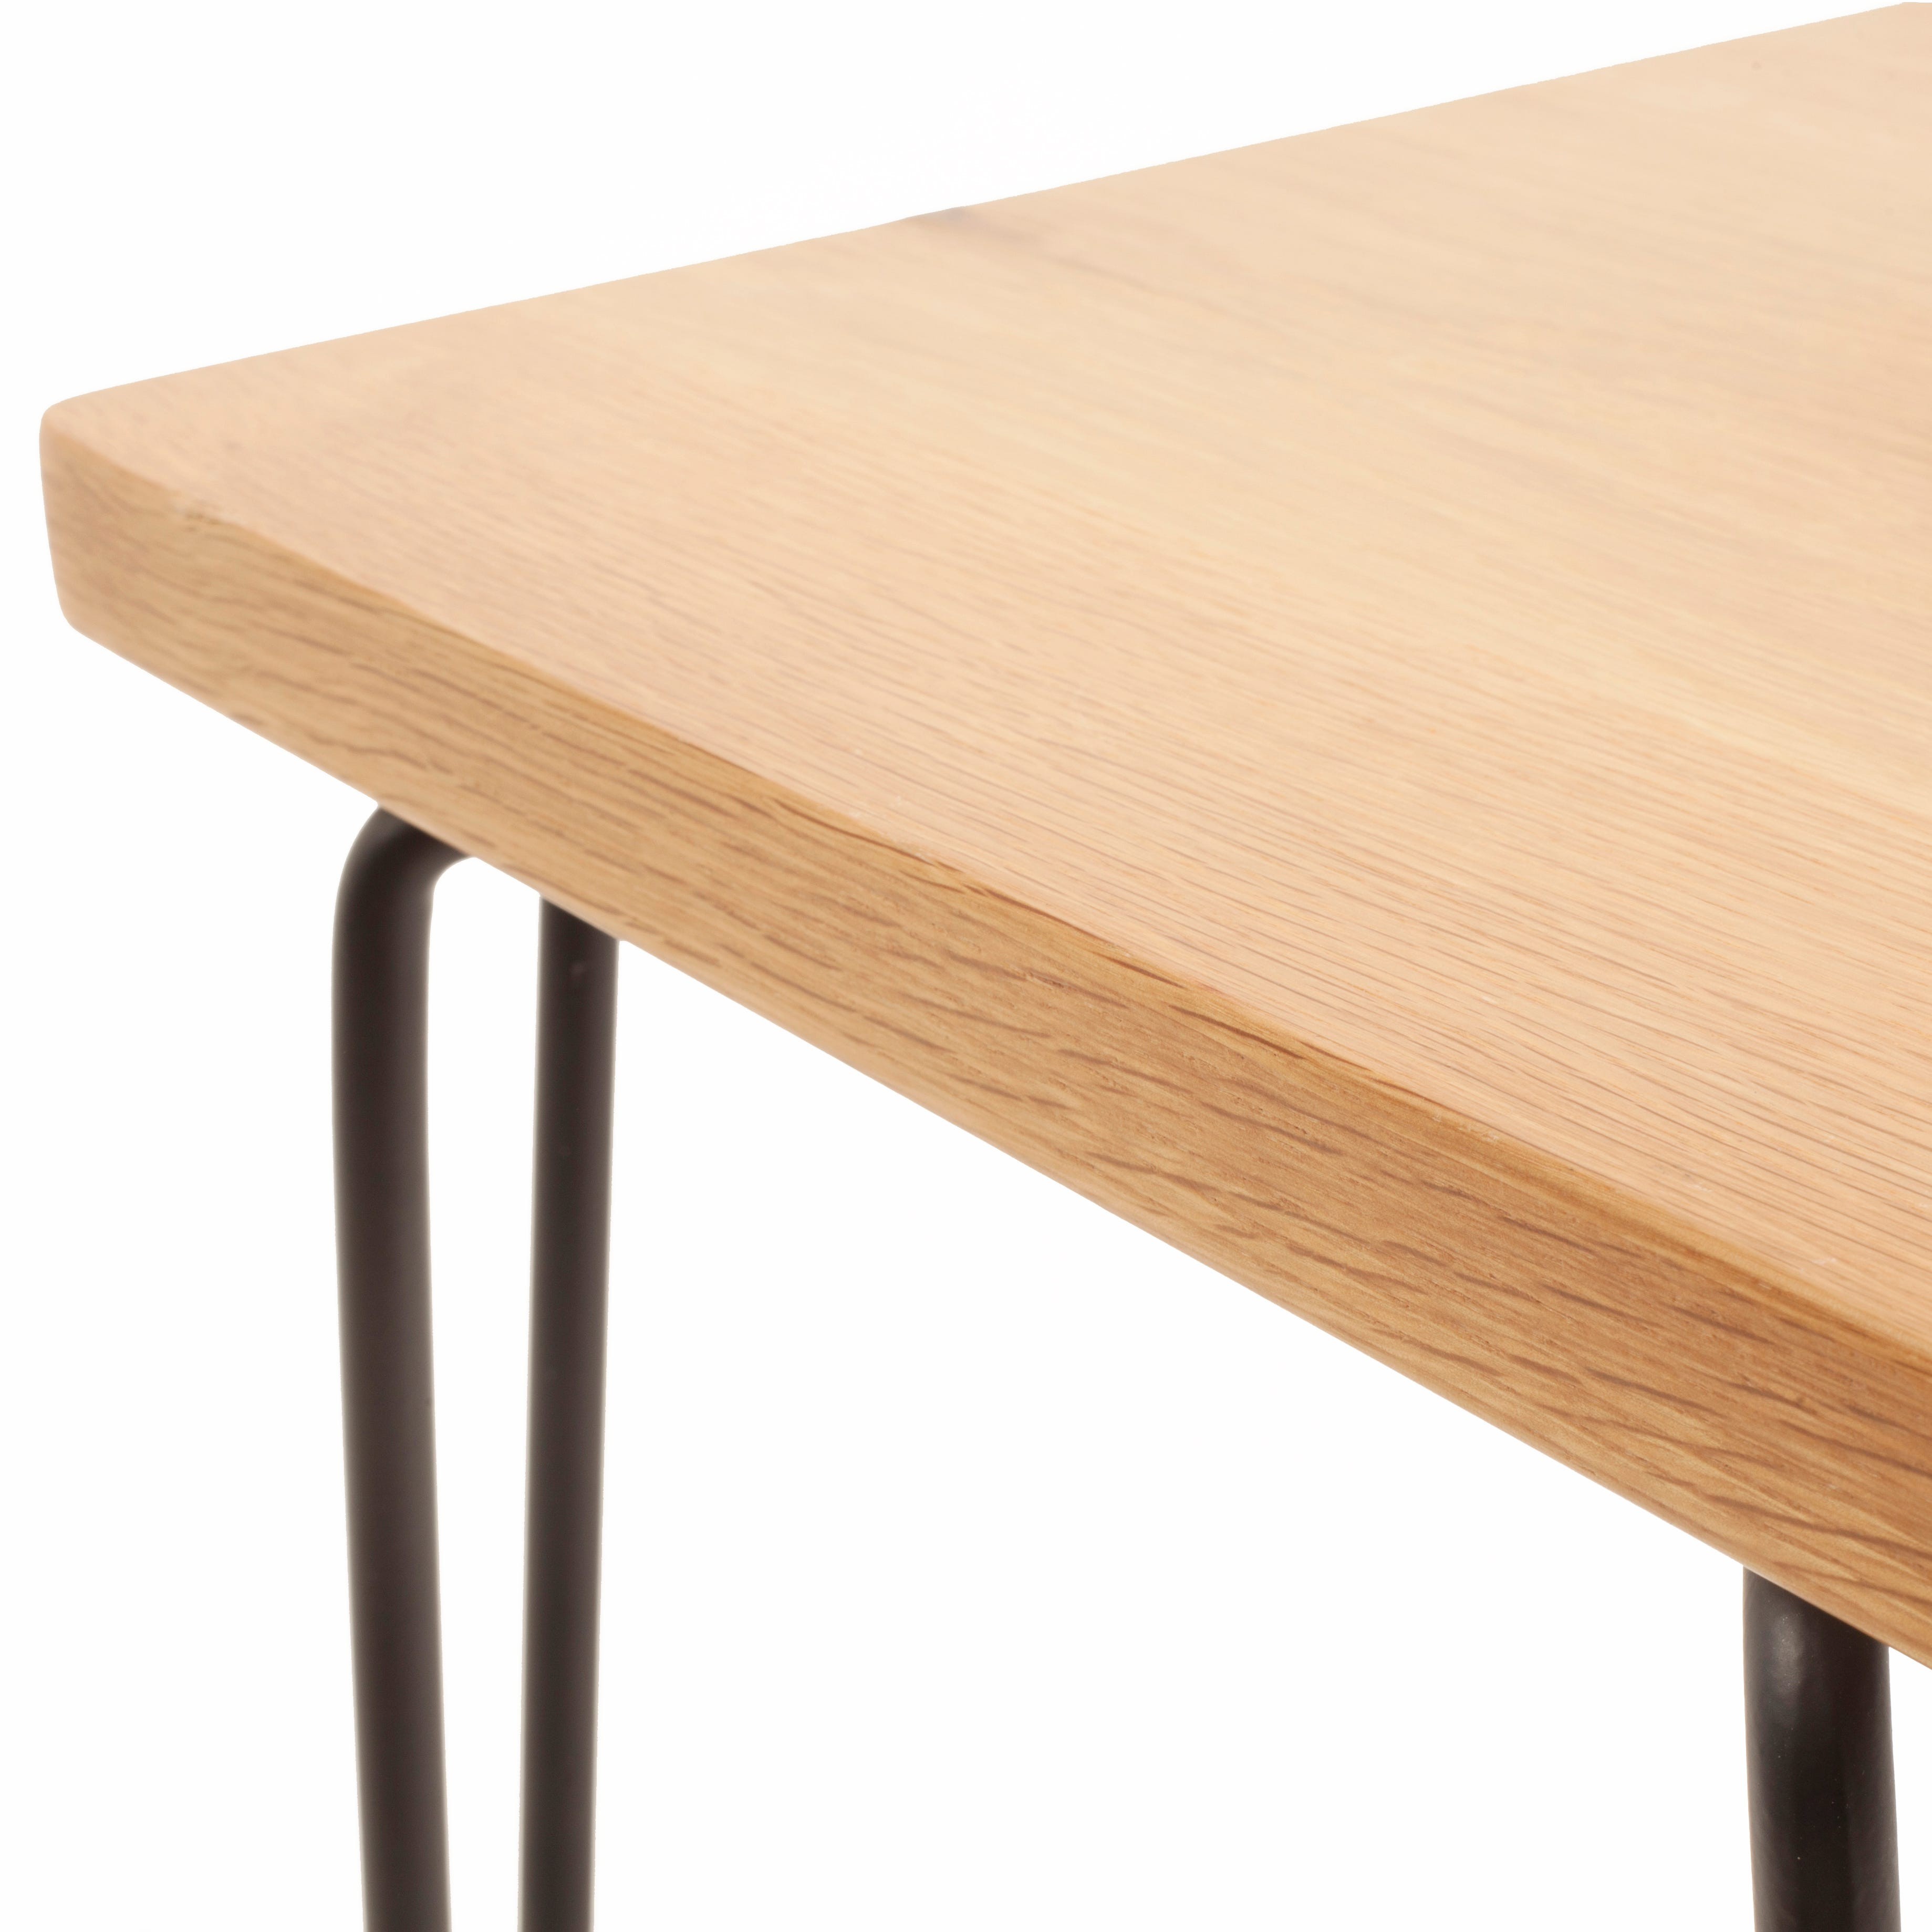 An agile design from Rob Scarlett that can be used as a dining seat, dressing stool or side table.